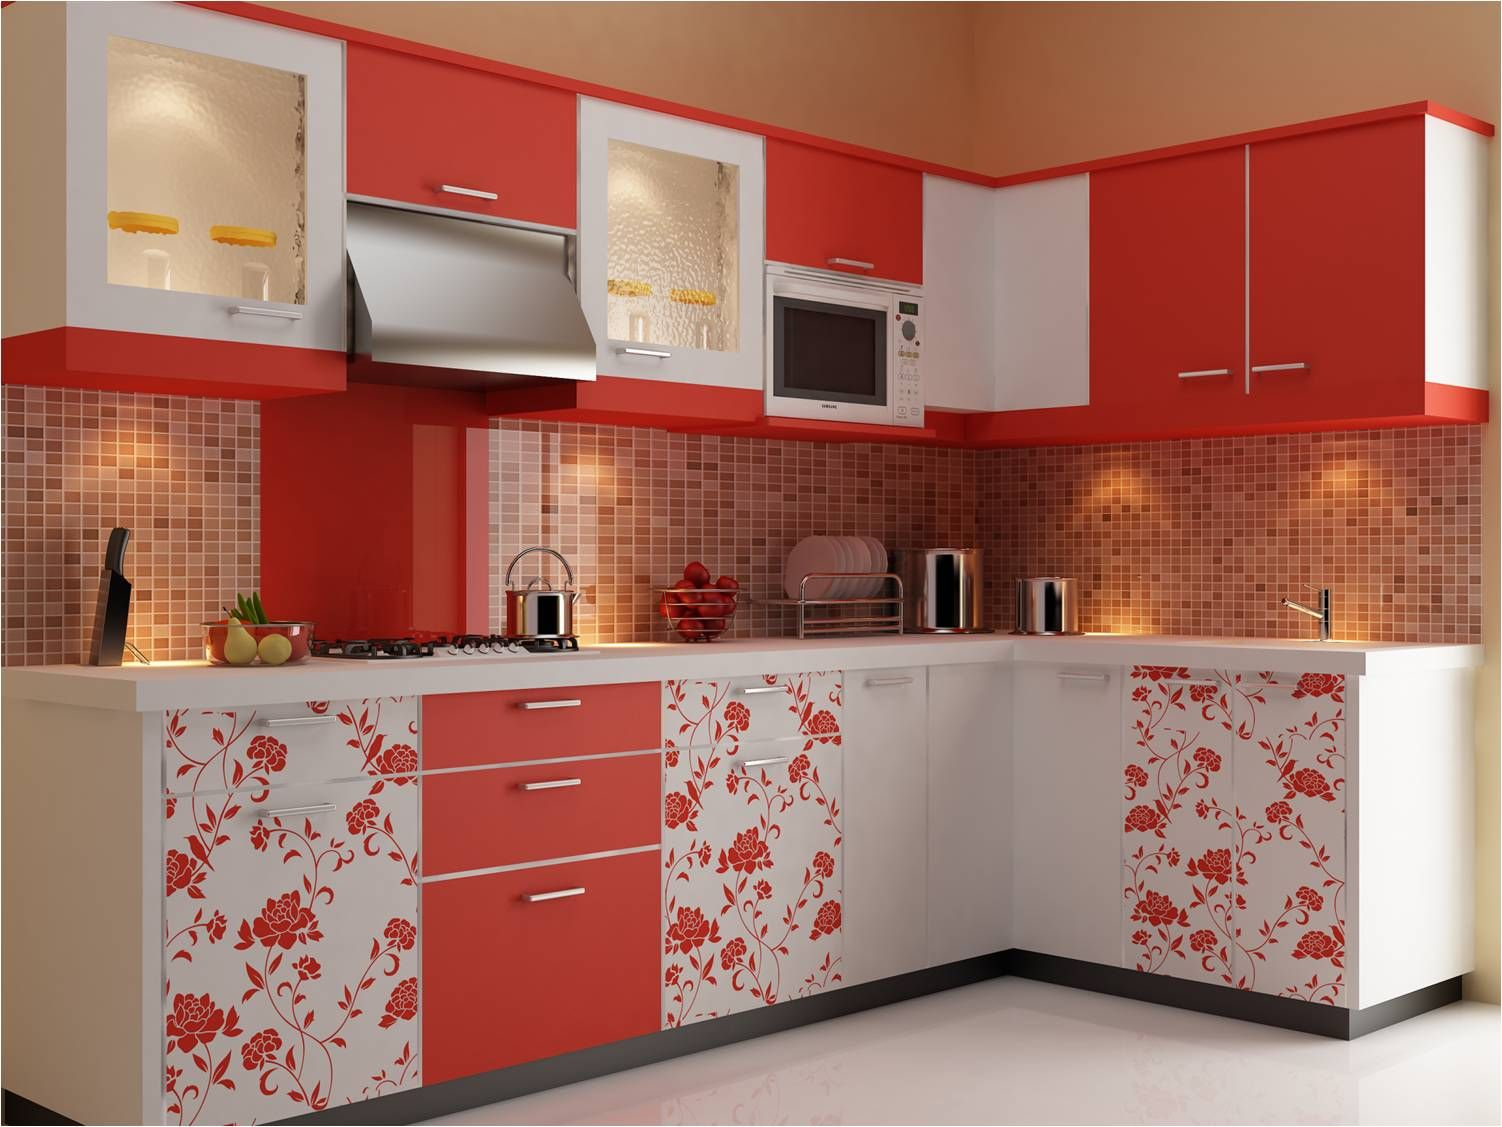 Kitchen cabinet doors in bangalore first time in india architect - Kitchen Design Exciting Pink Modular Kitchen Design Furniture With Floral And Brown Square Tile Wall Decor Ideas Feats Red White Cabinetary Also Modern